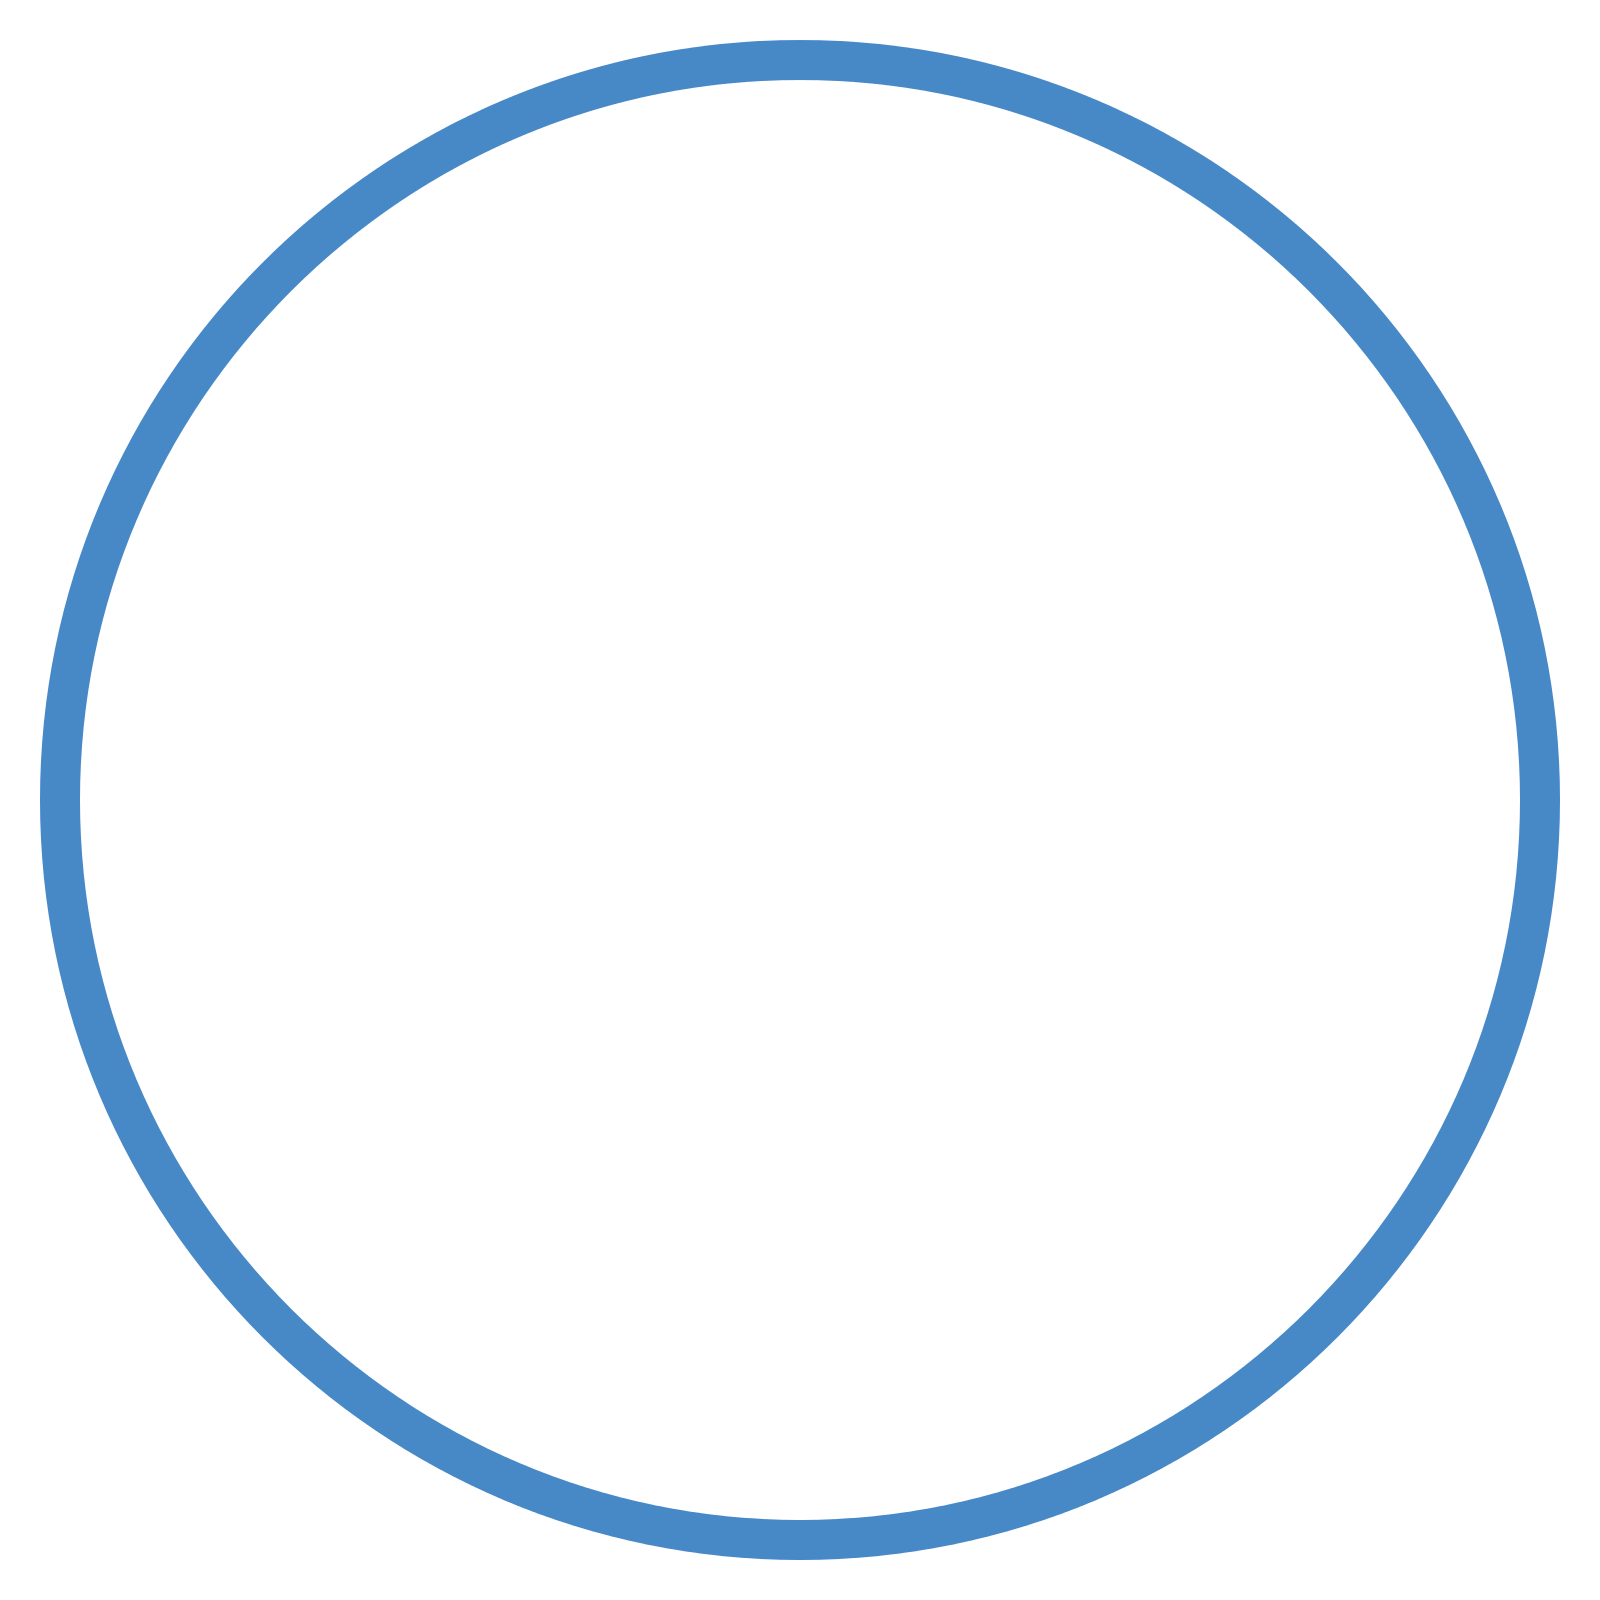 Circle .png. Icon clipart transparentpng